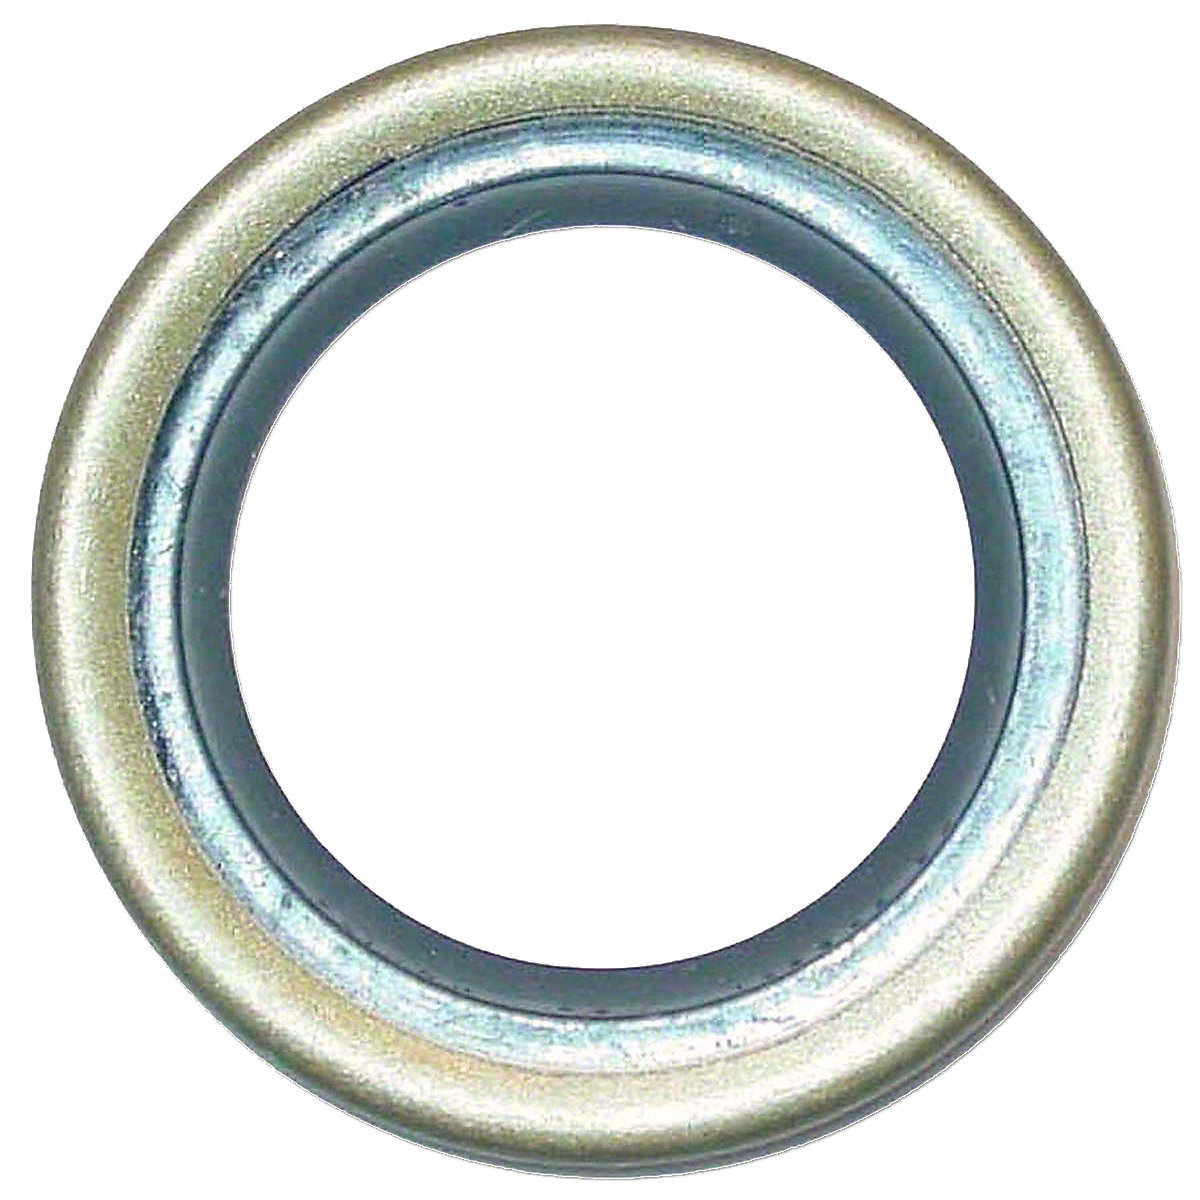 PTO Shaft Oil Seal For Oliver: Super 44, 440, 660, 770, 880, 1550, 1555, 1600, 1650, 1655.